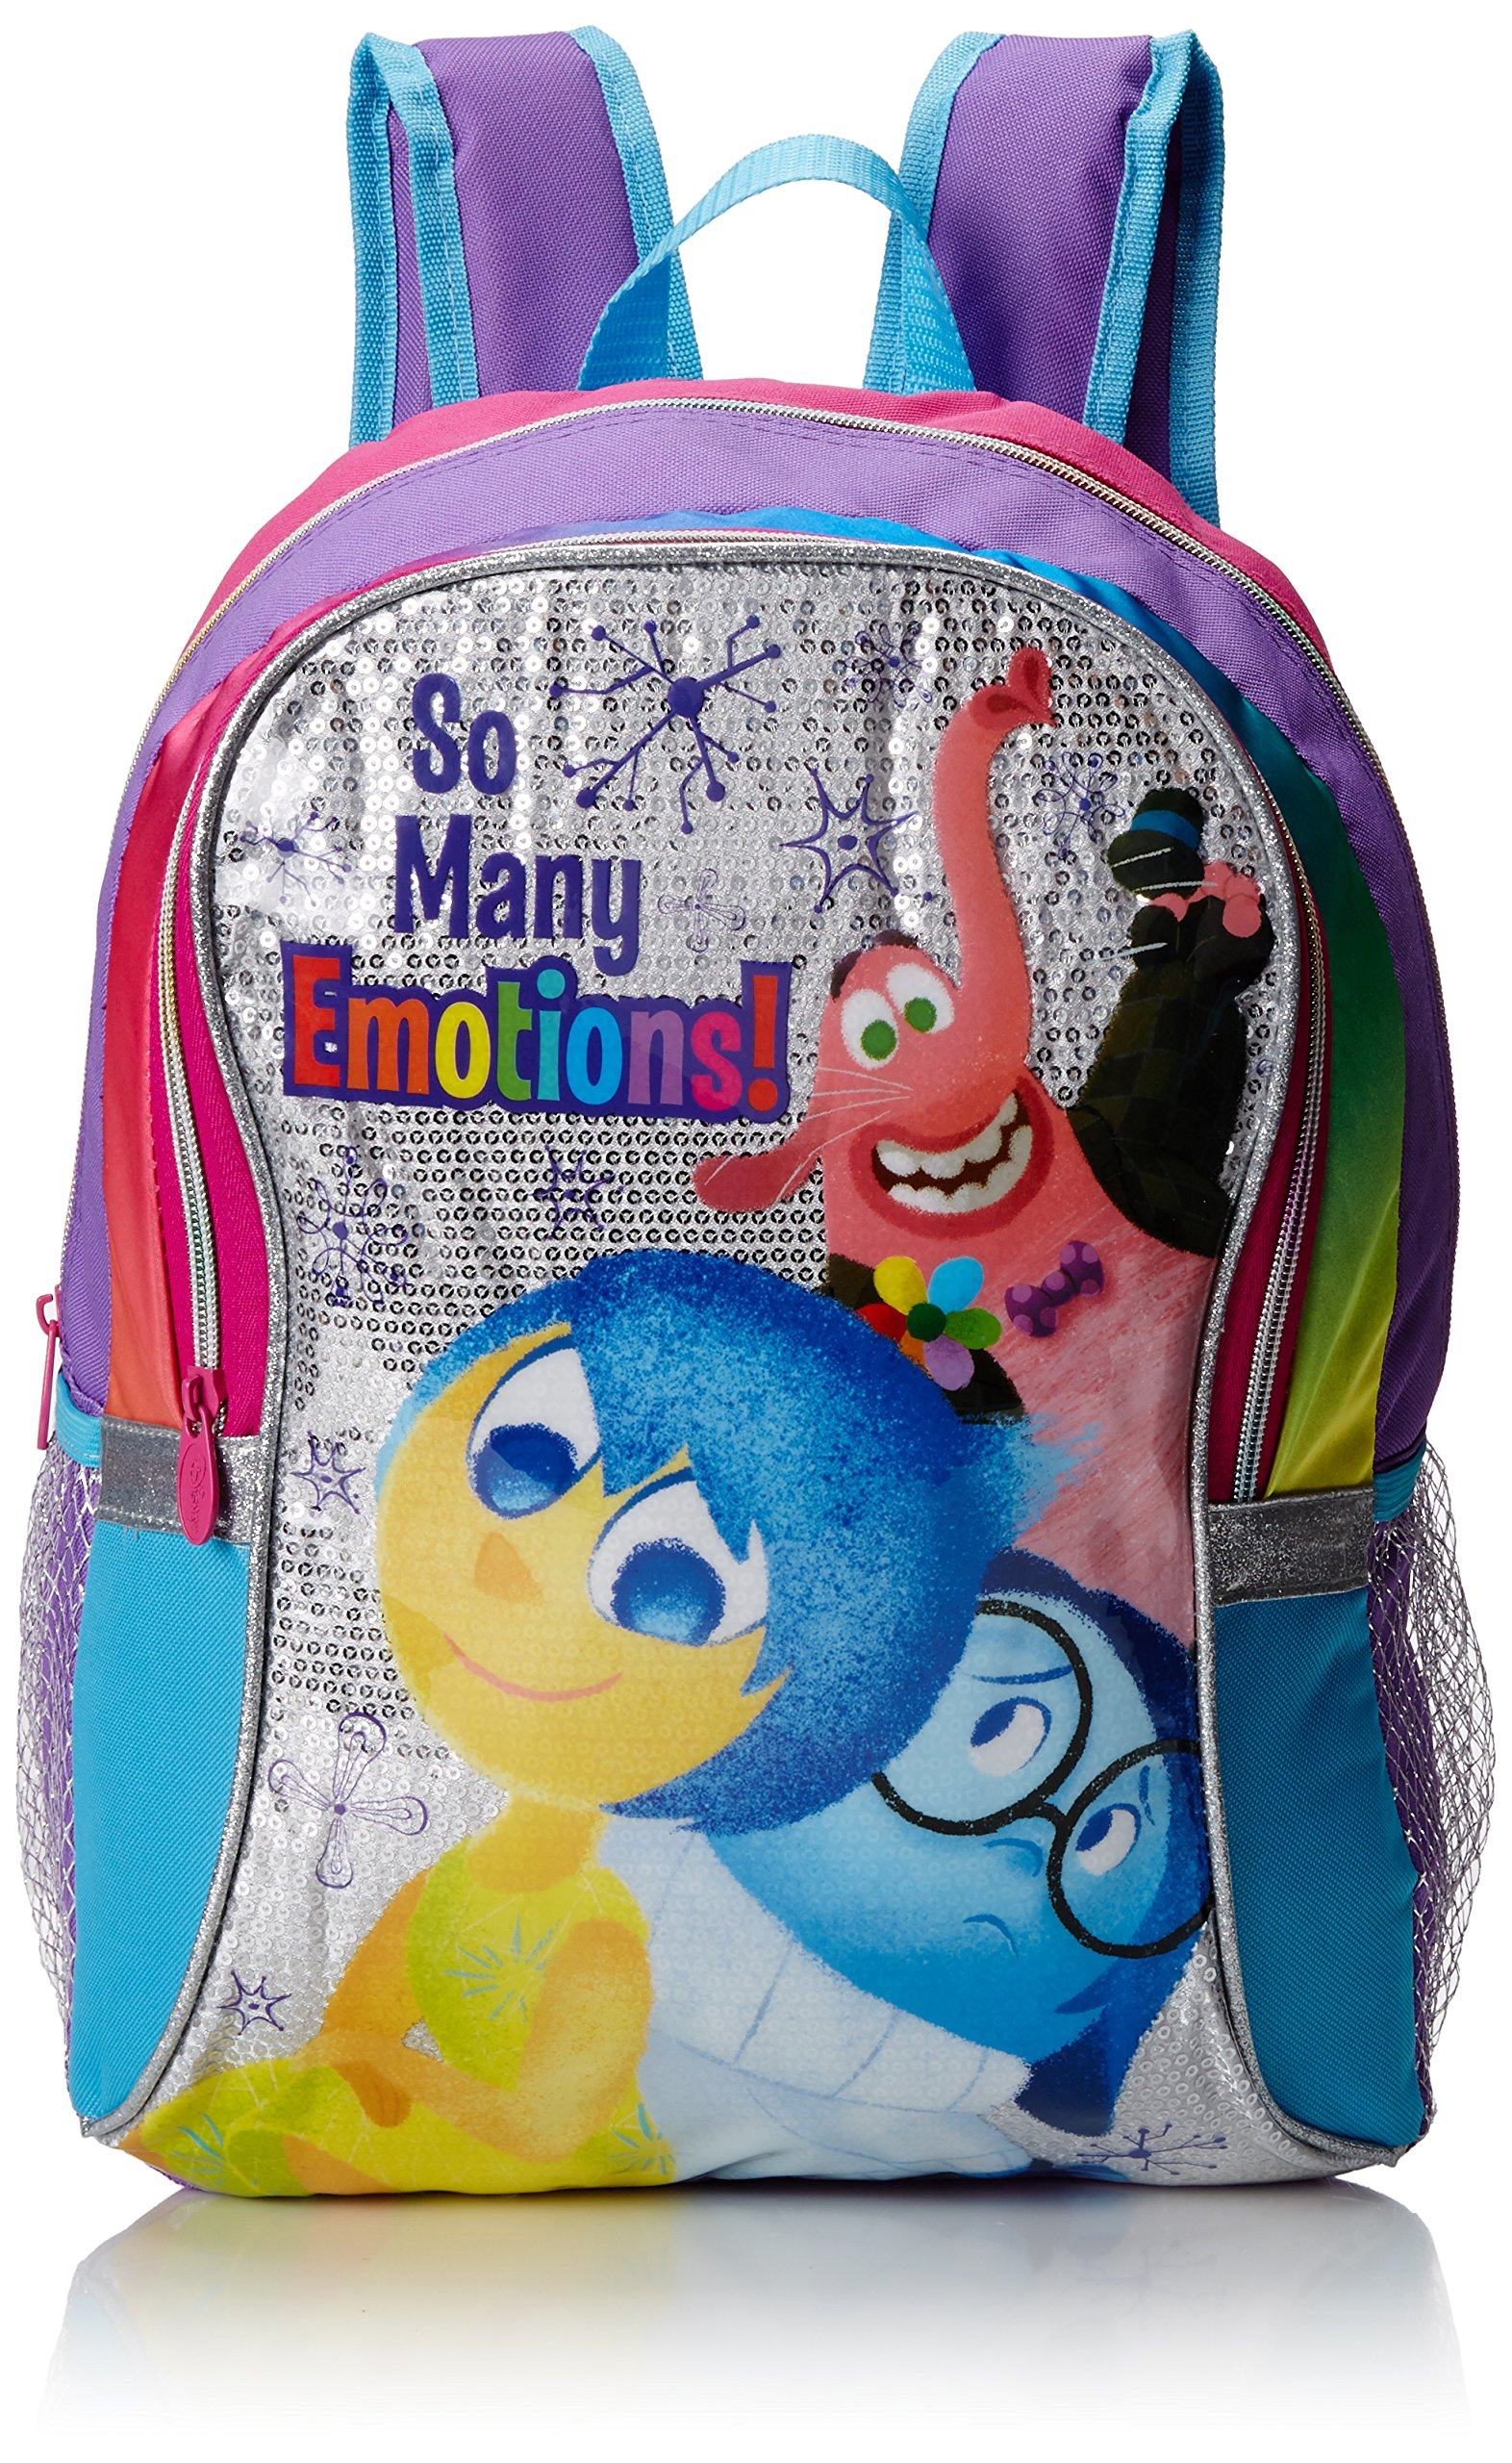 """Disney Girl's INSIDE OUT """"So Many Emotions!"""" Backpack - Sparkle accents with teal, pink, orange, and purple accents. Joy, Sadness, and Bing Bong decorate this one."""